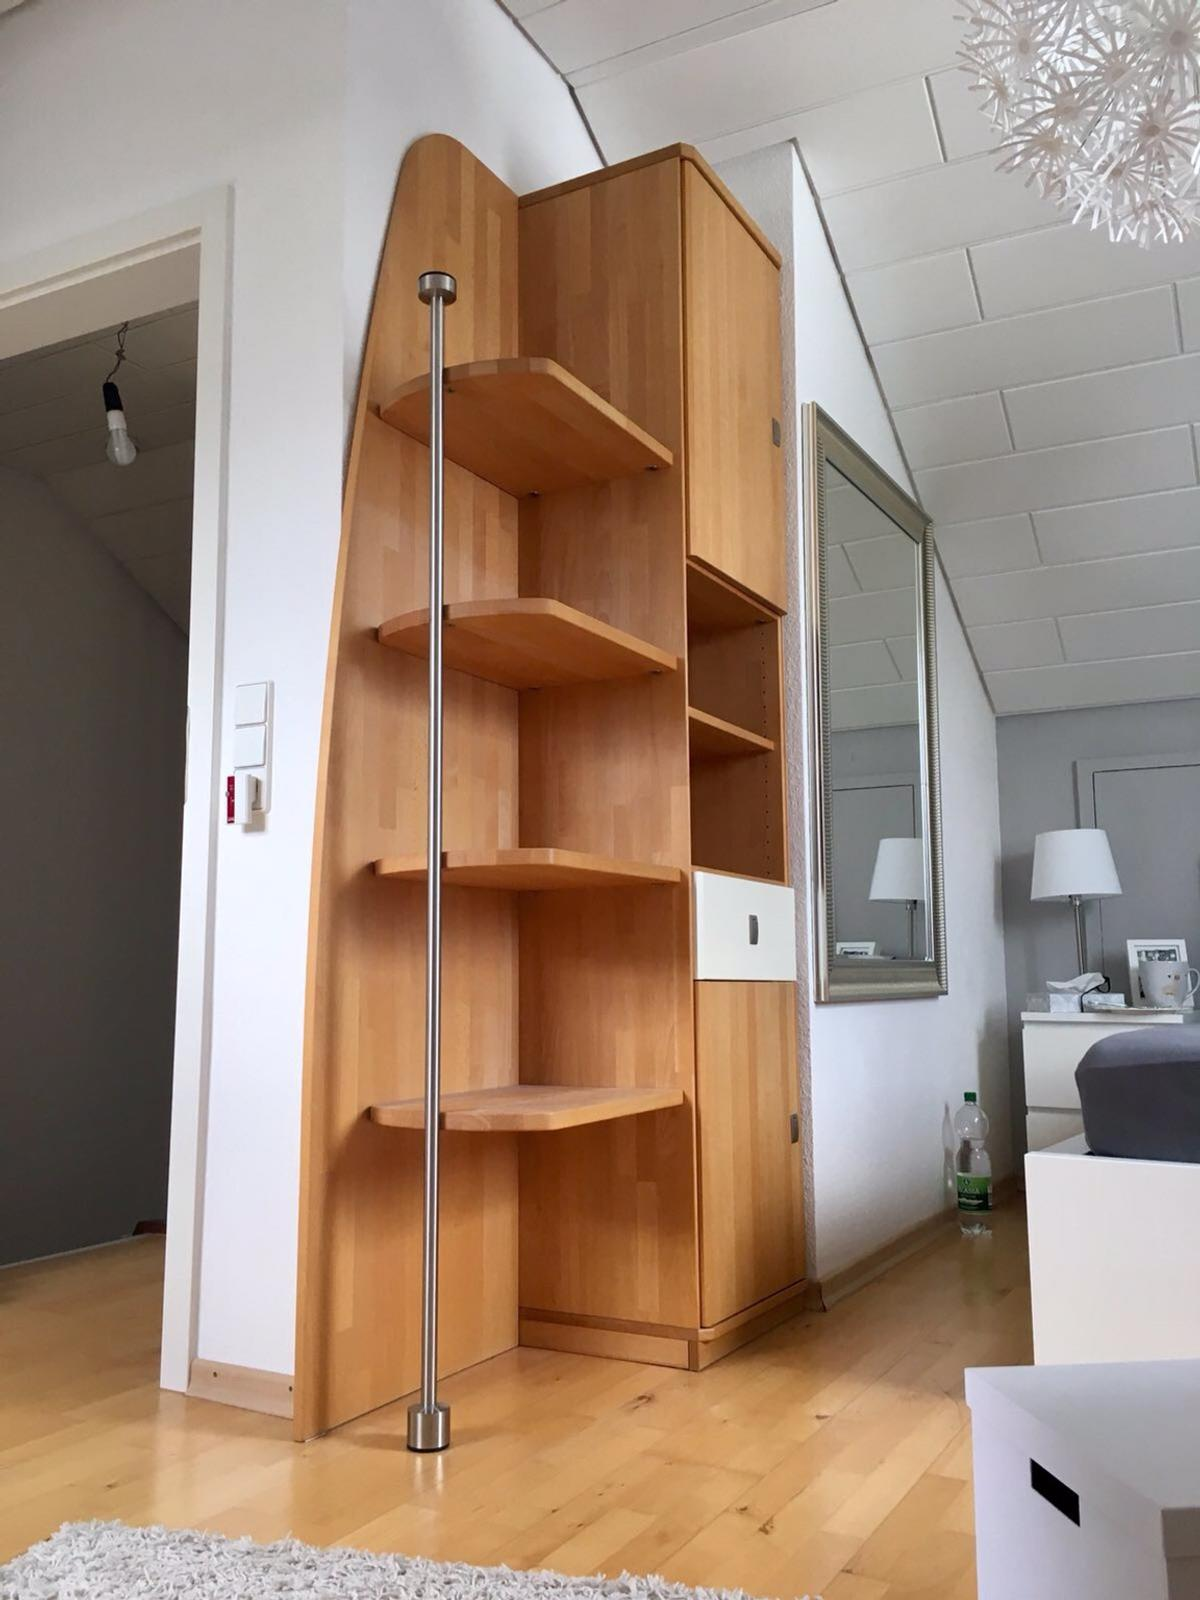 Schrank Regal Kombination In 73275 Ohmden For 100 00 For Sale